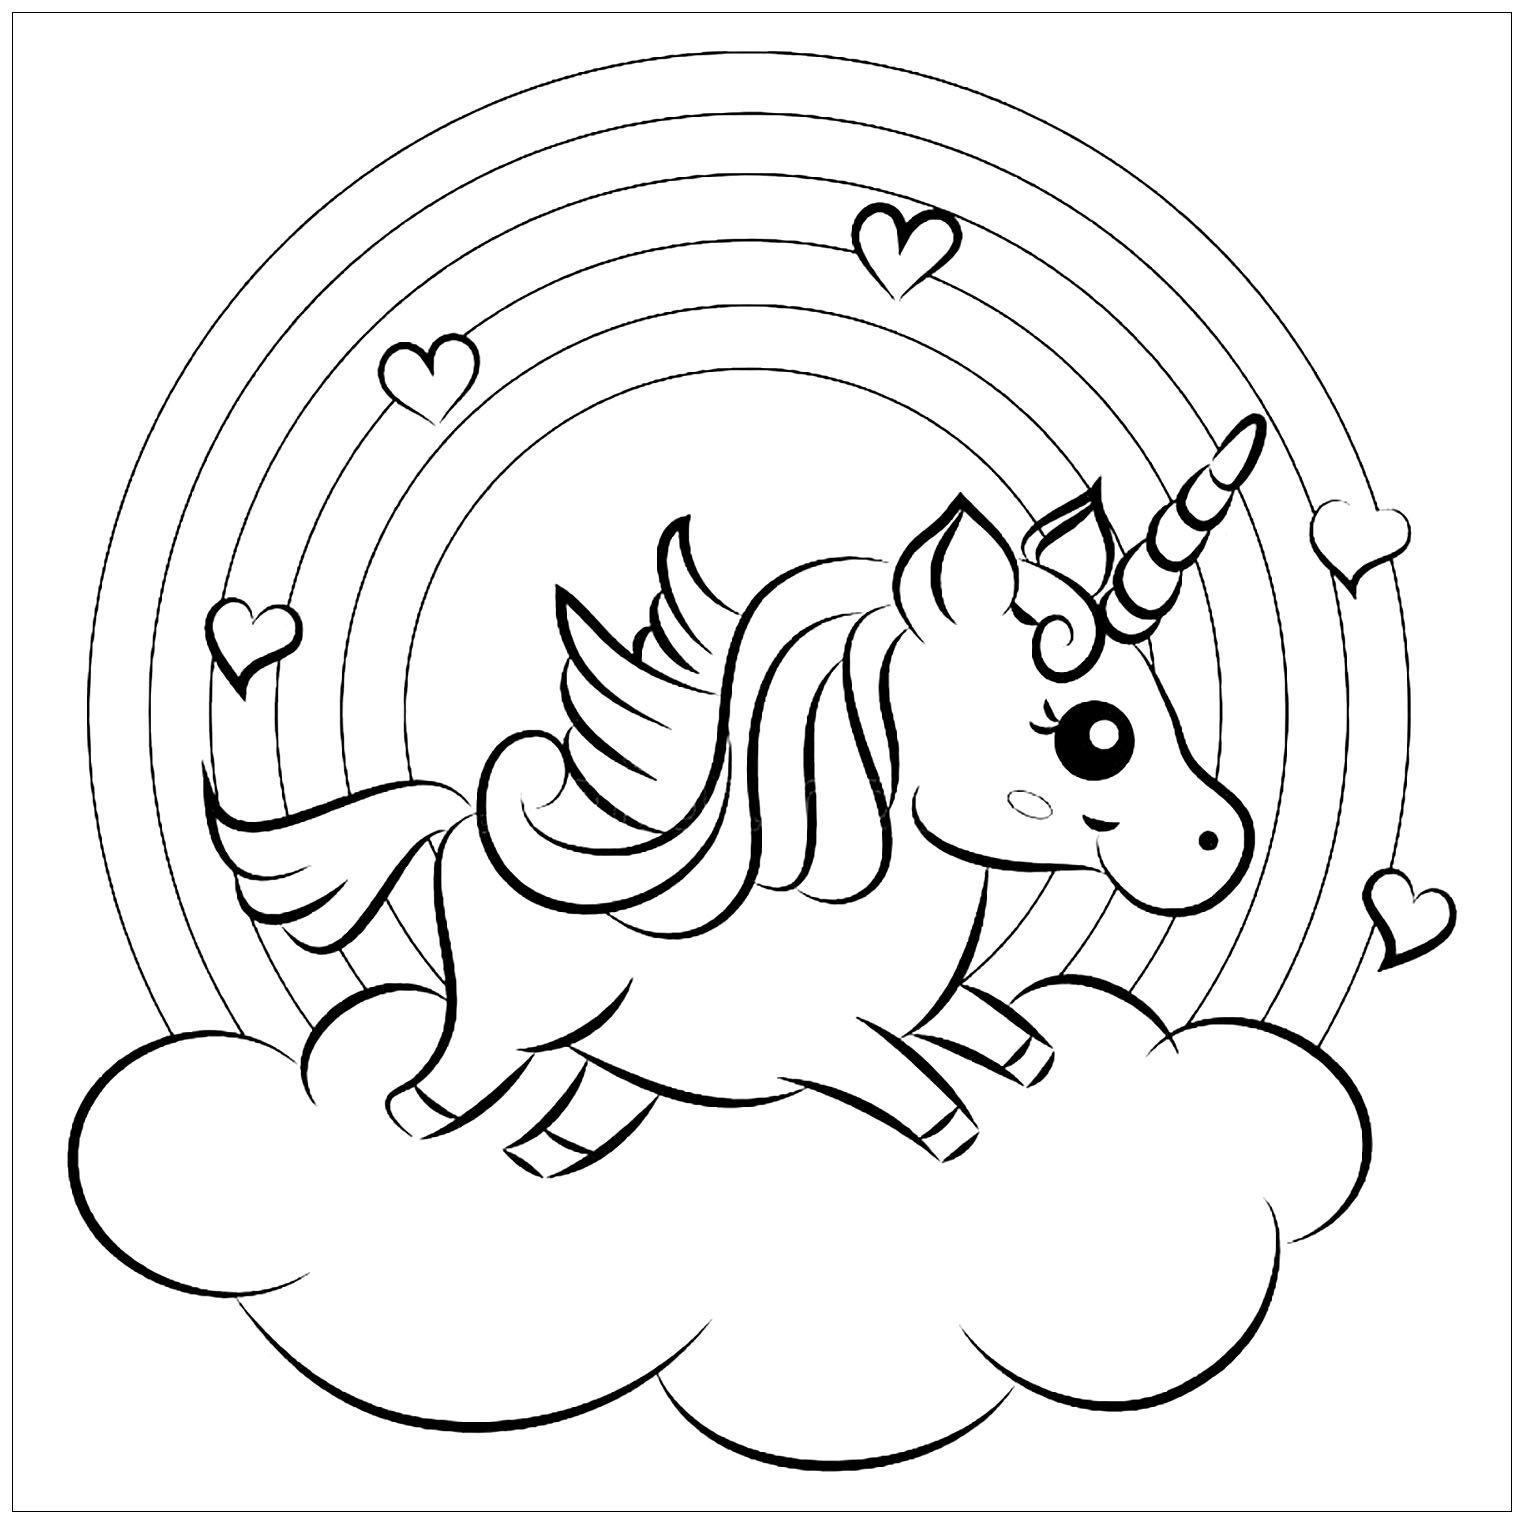 coloring unicorn colour unicorn coloring pages to download and print for free coloring unicorn colour